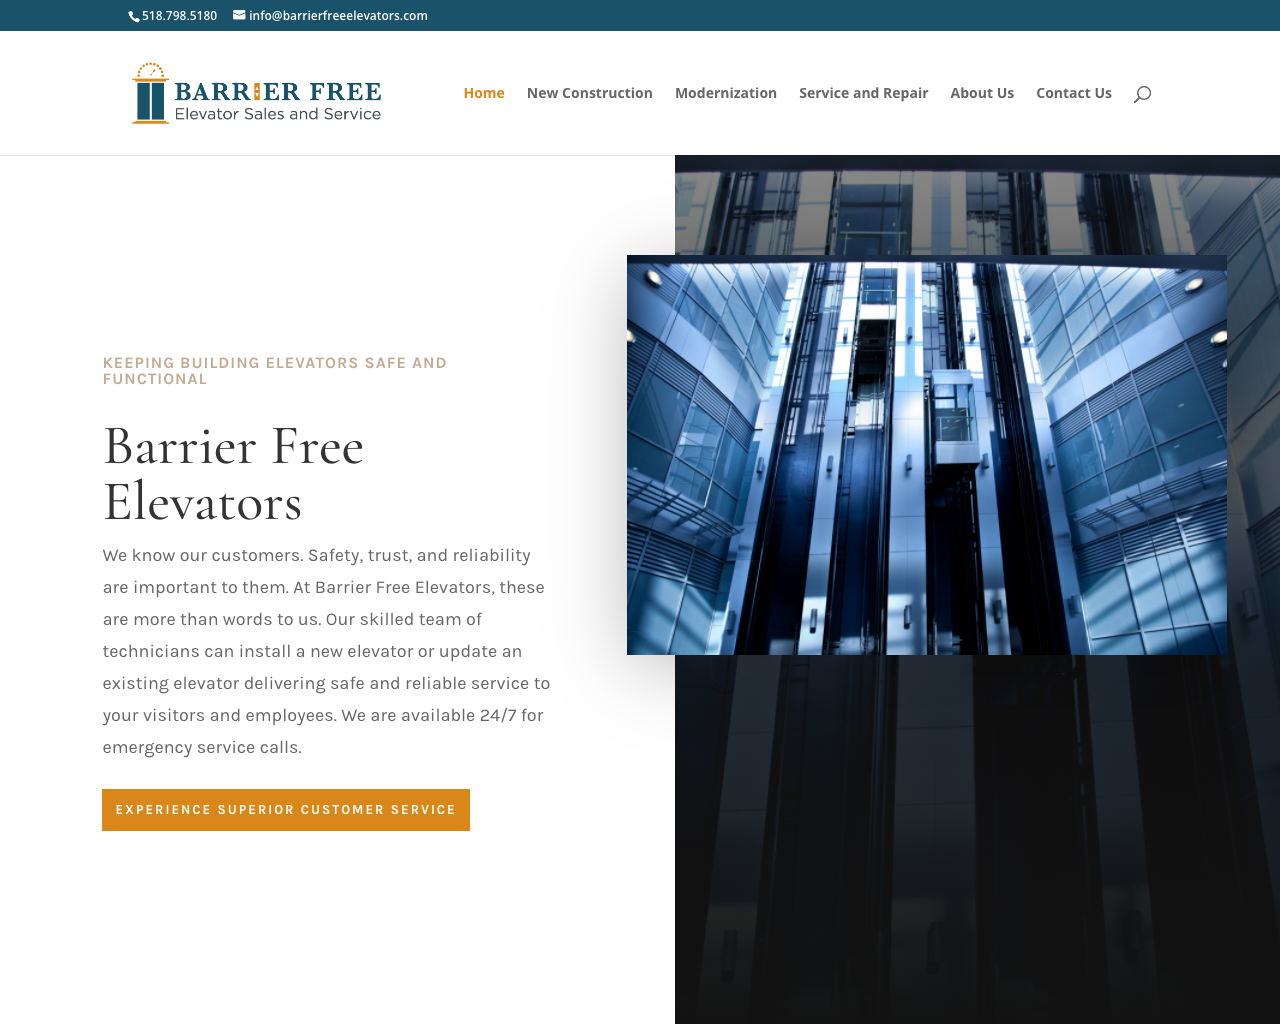 Barrier Free Elevators - Logo, content and website design